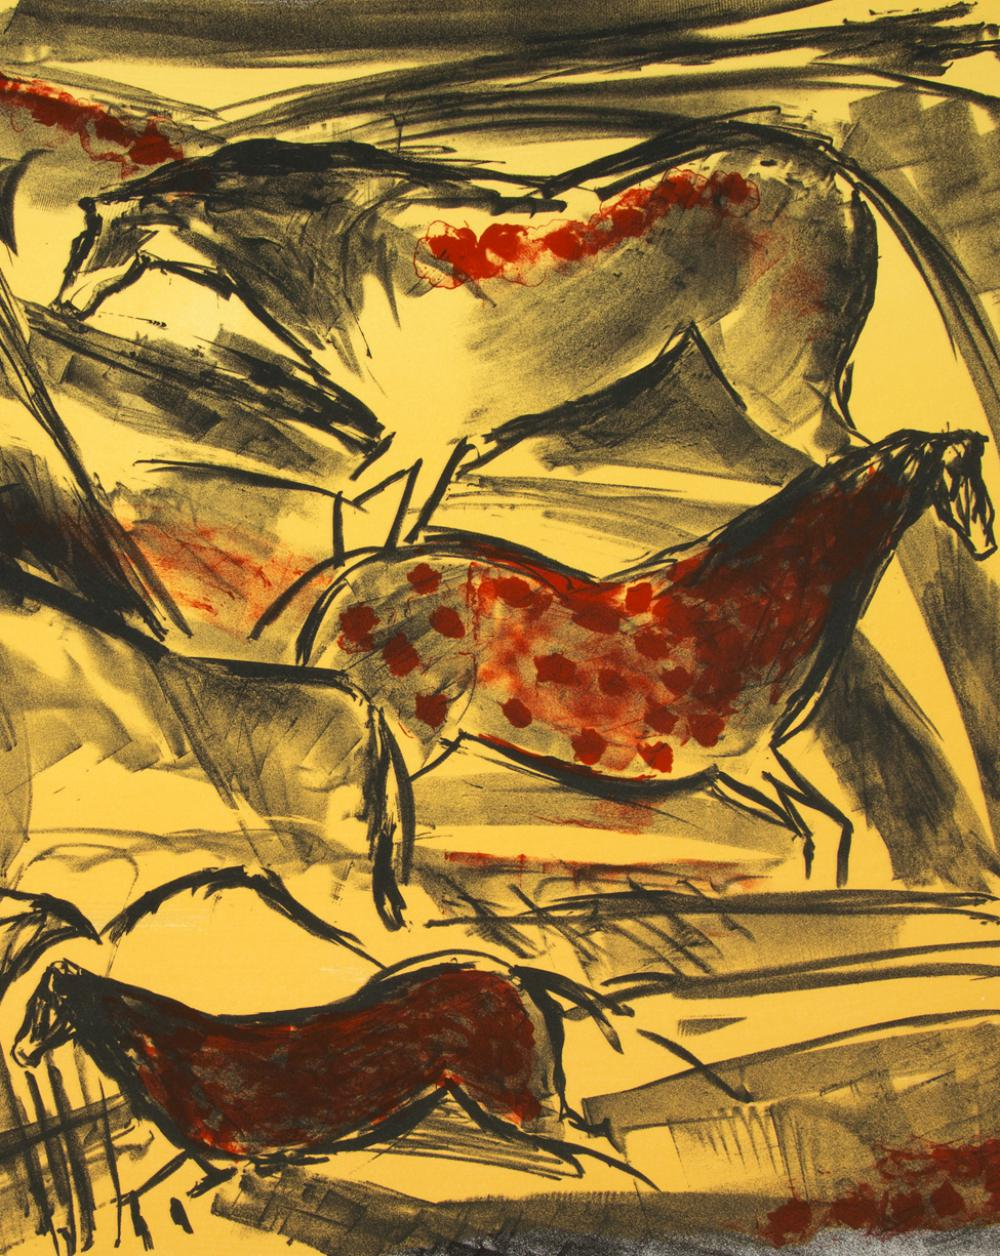 Elaine de Kooning (American, 1920-1989), Untitled, from The Lascaux Series, 1984